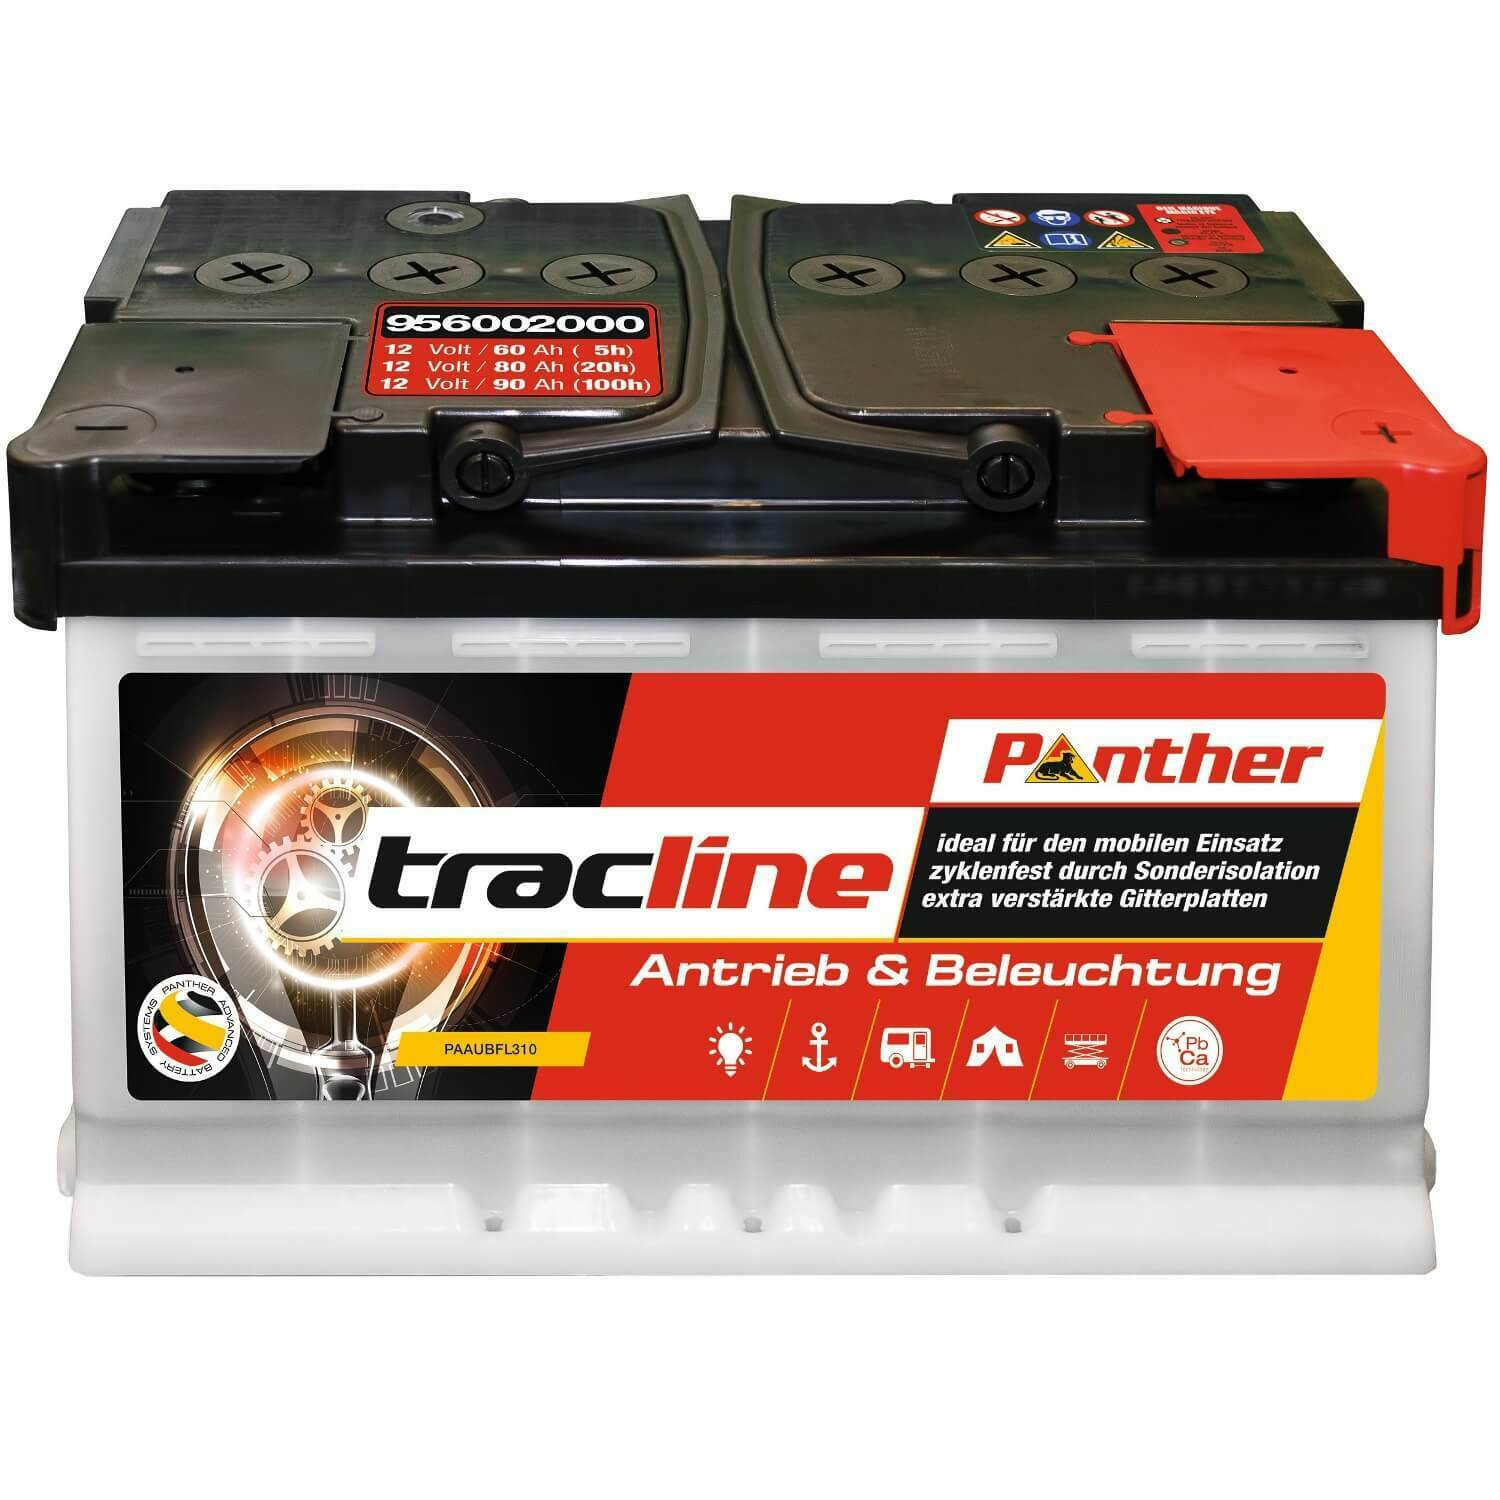 Panther tracline 12 V / 90 Ah (C20) 95752 zyklenfest